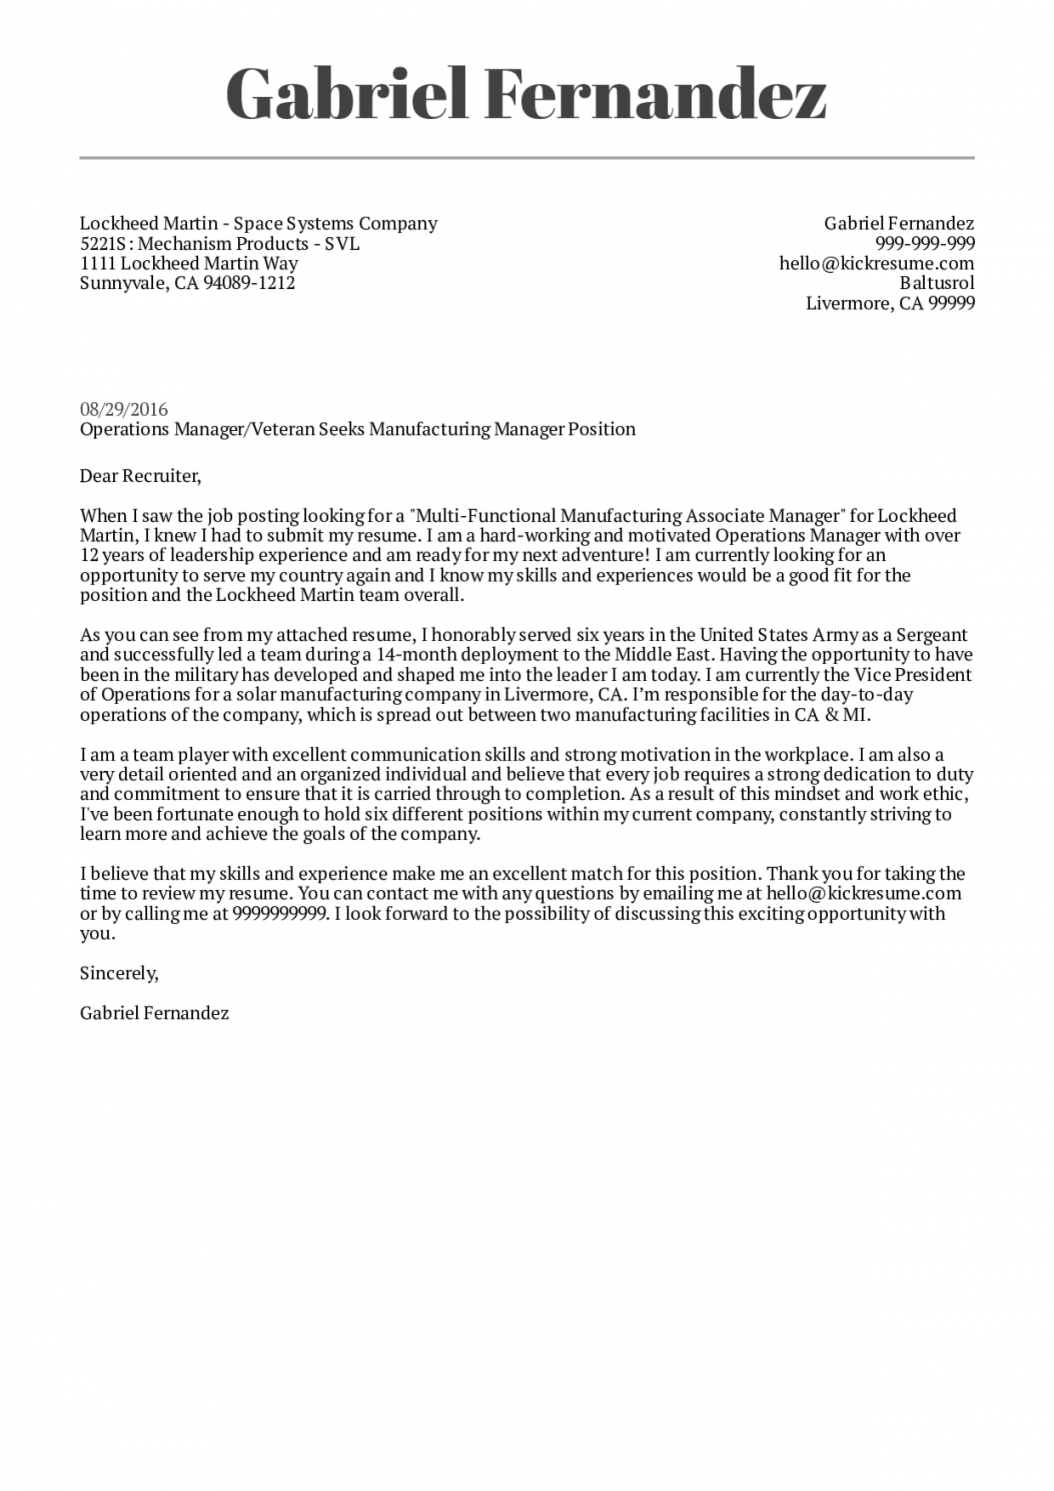 free lockheed martin manufacturing manager cover letter  kickresume office manager cover letter template pdf